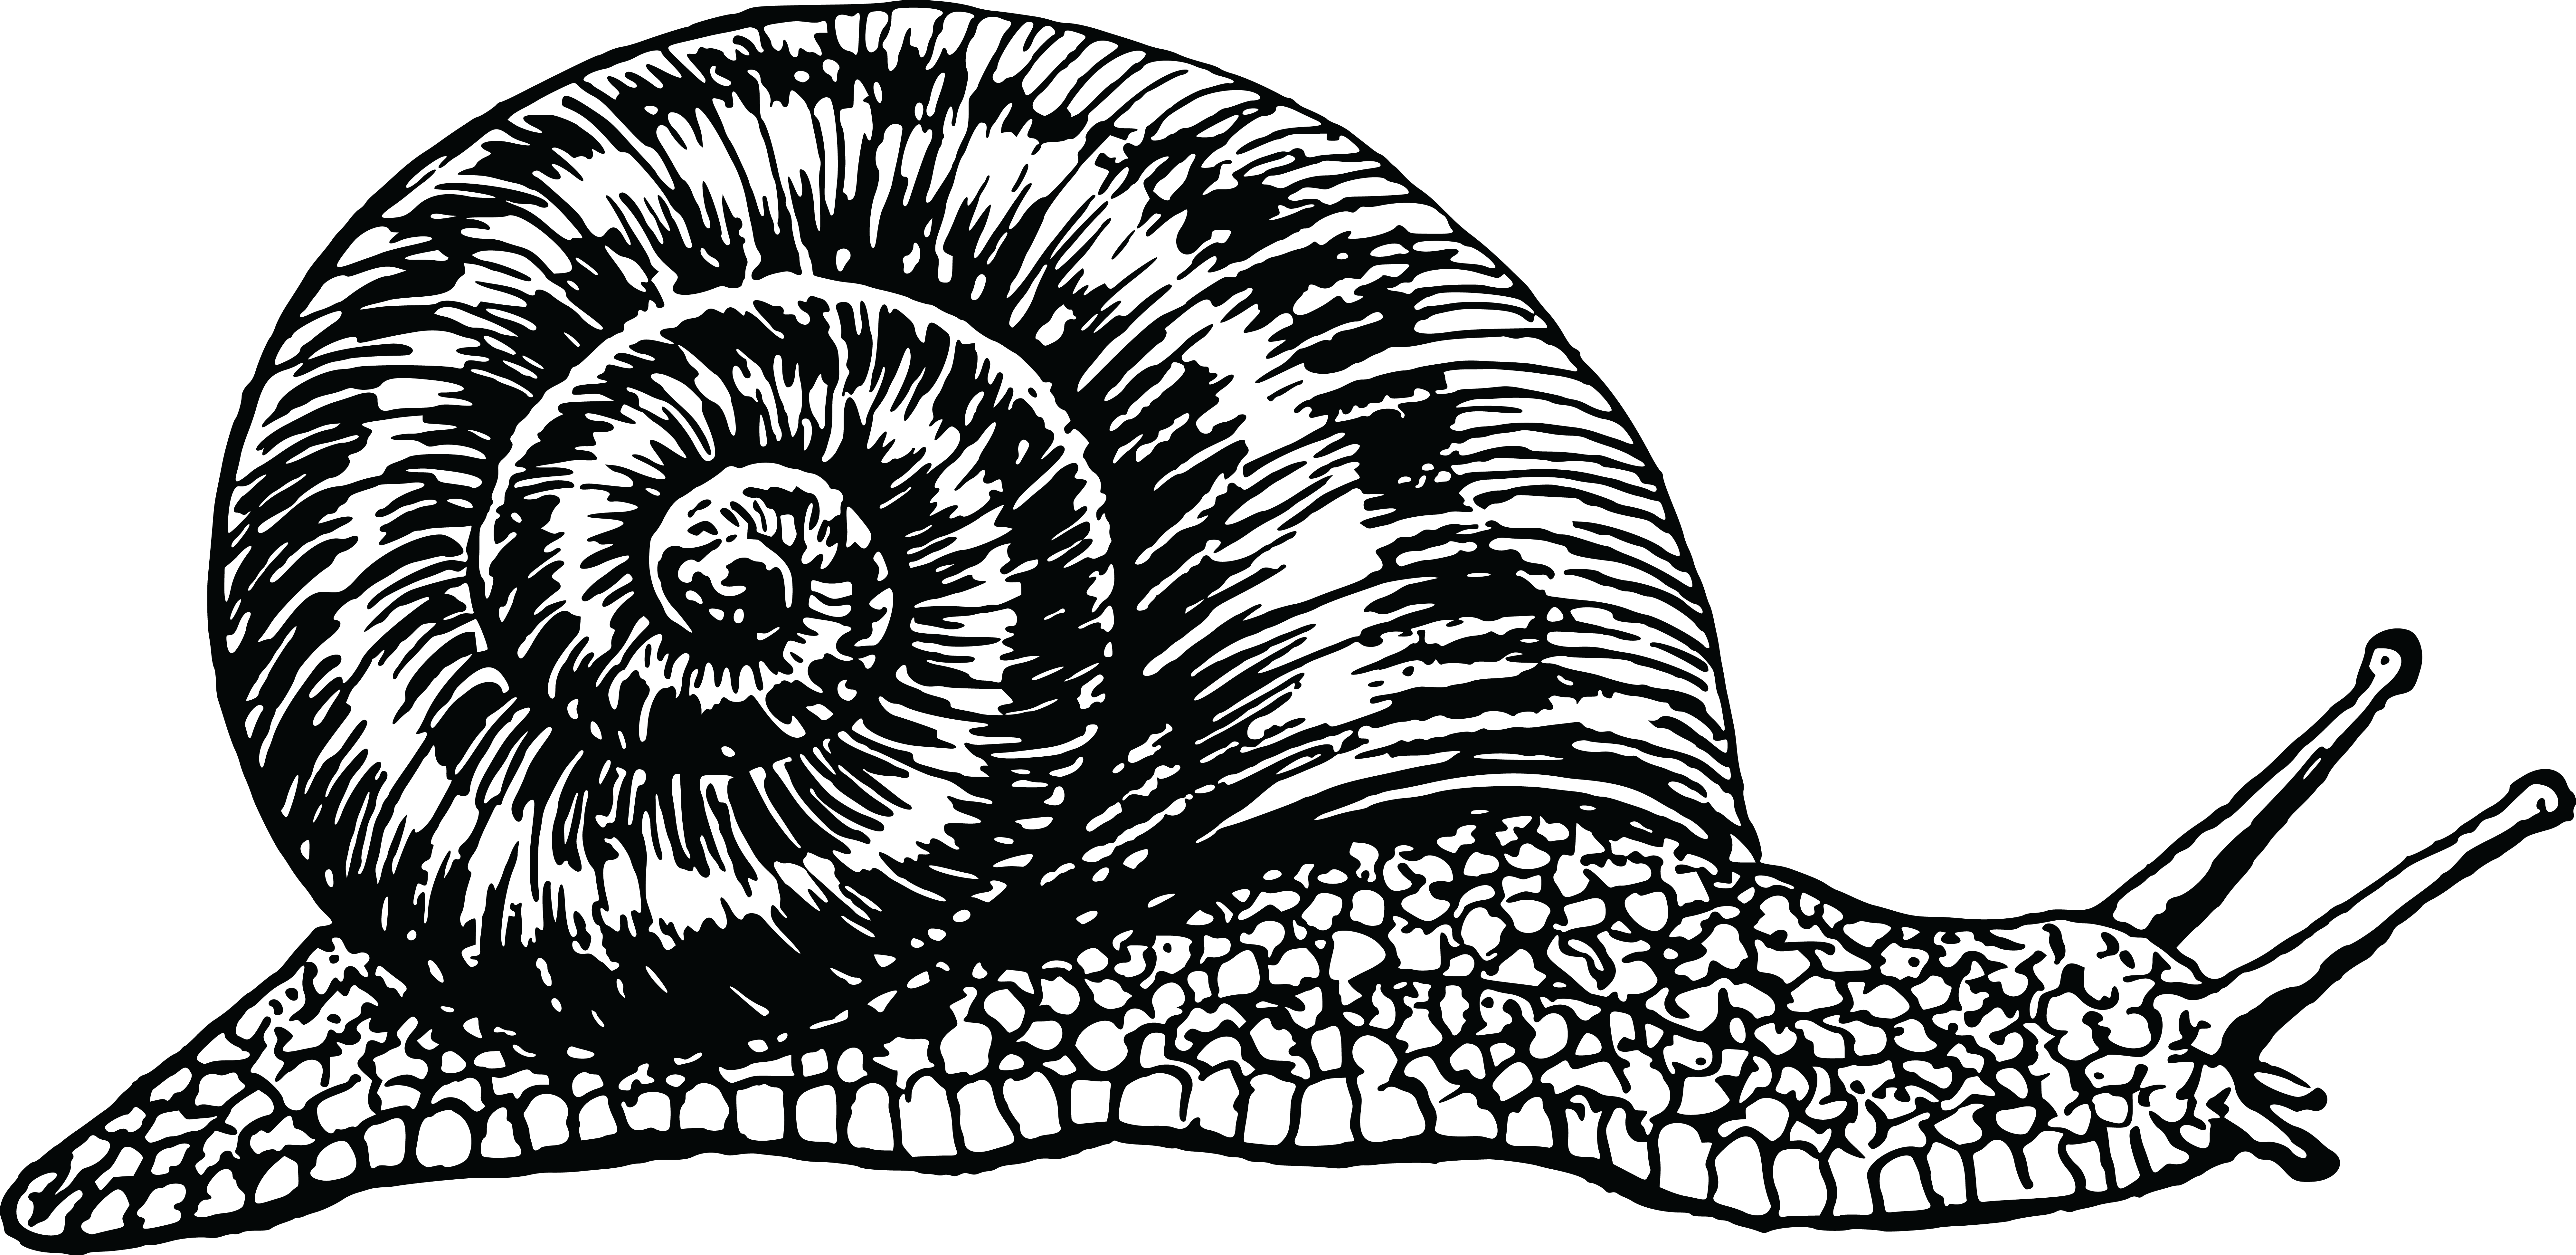 PNG Snail Black And White - 86829